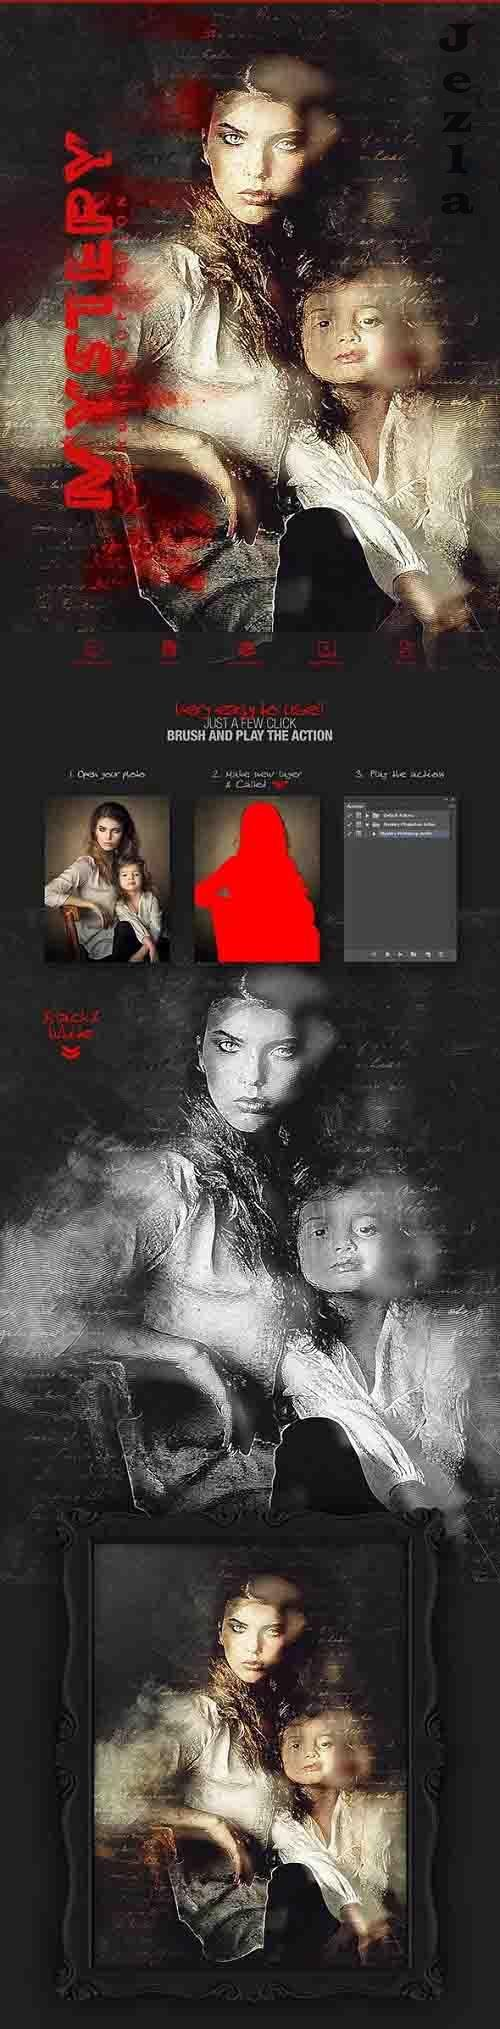 Mystery Photoshop Action - 32309560